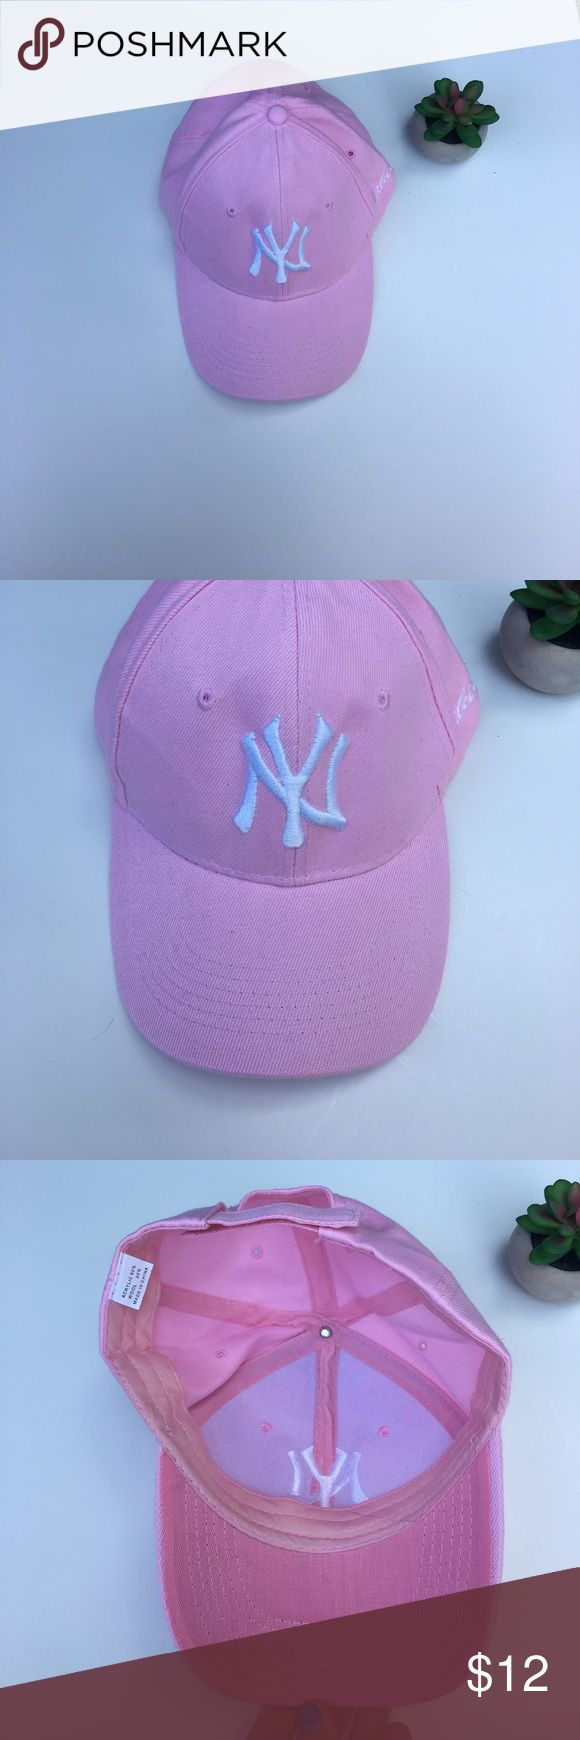 🎉Super cute pink Yankee hat🎉 ⚾️ Pink Yankees hat .. not an official hat, it has an adjustable back for ur pony tail 😊 .. never worn ! Perfect game day accessory ! ⚾️ 🎀 Accessories Hats